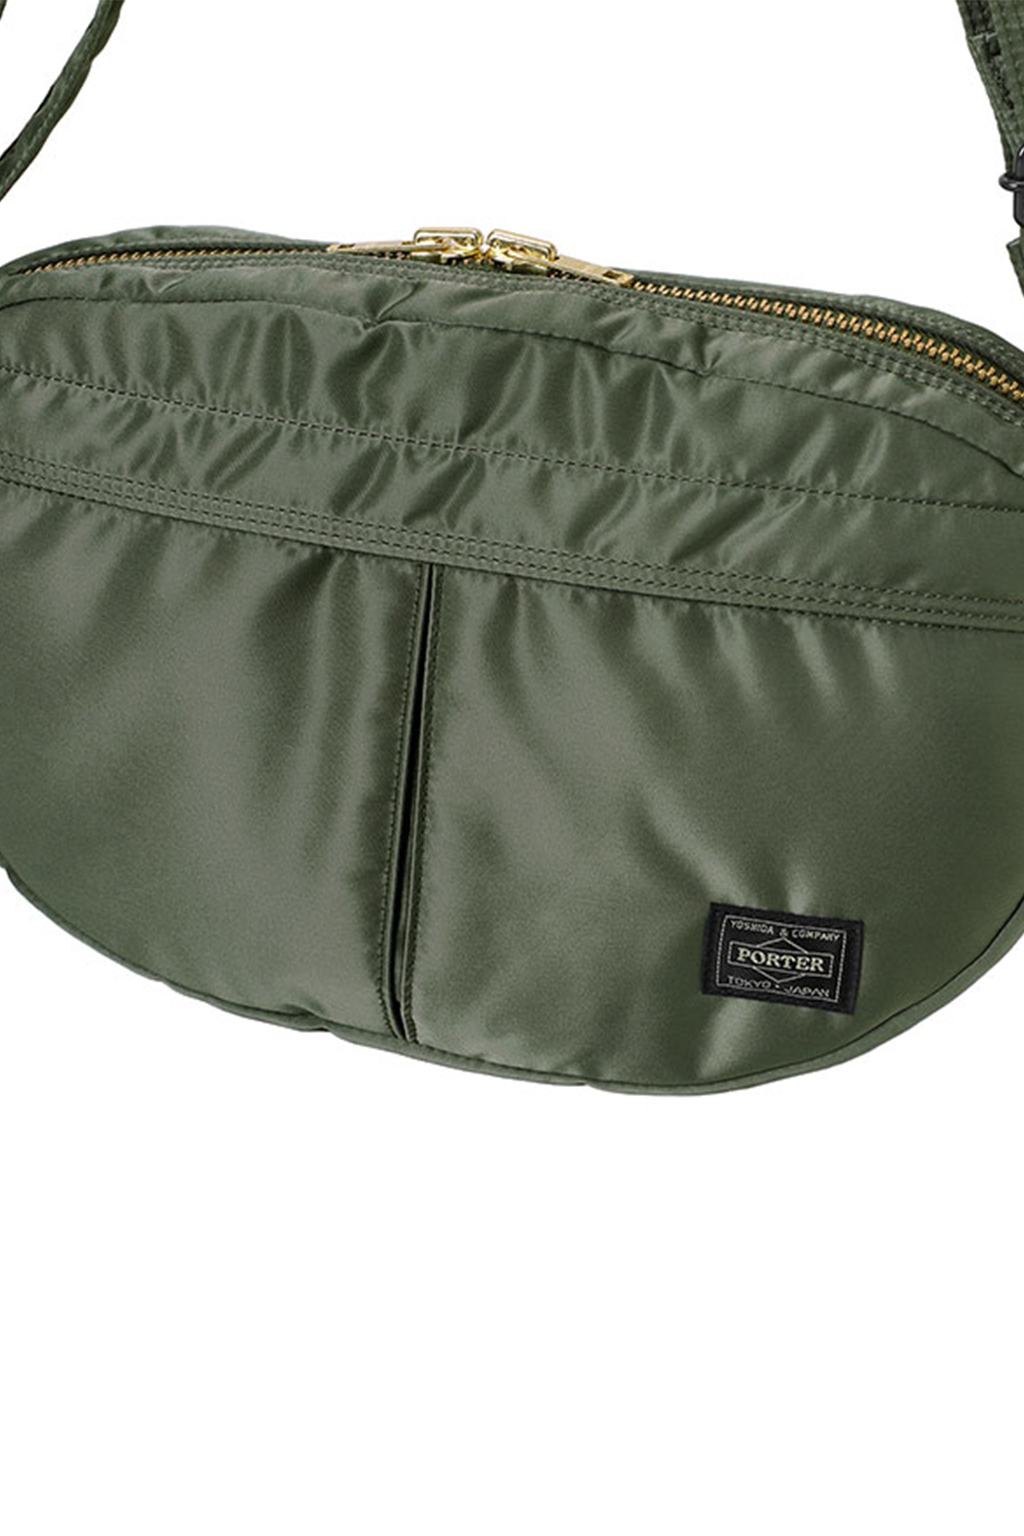 Porter Yoshida Tanker - Shoulder Bag - 3 Colour Choices